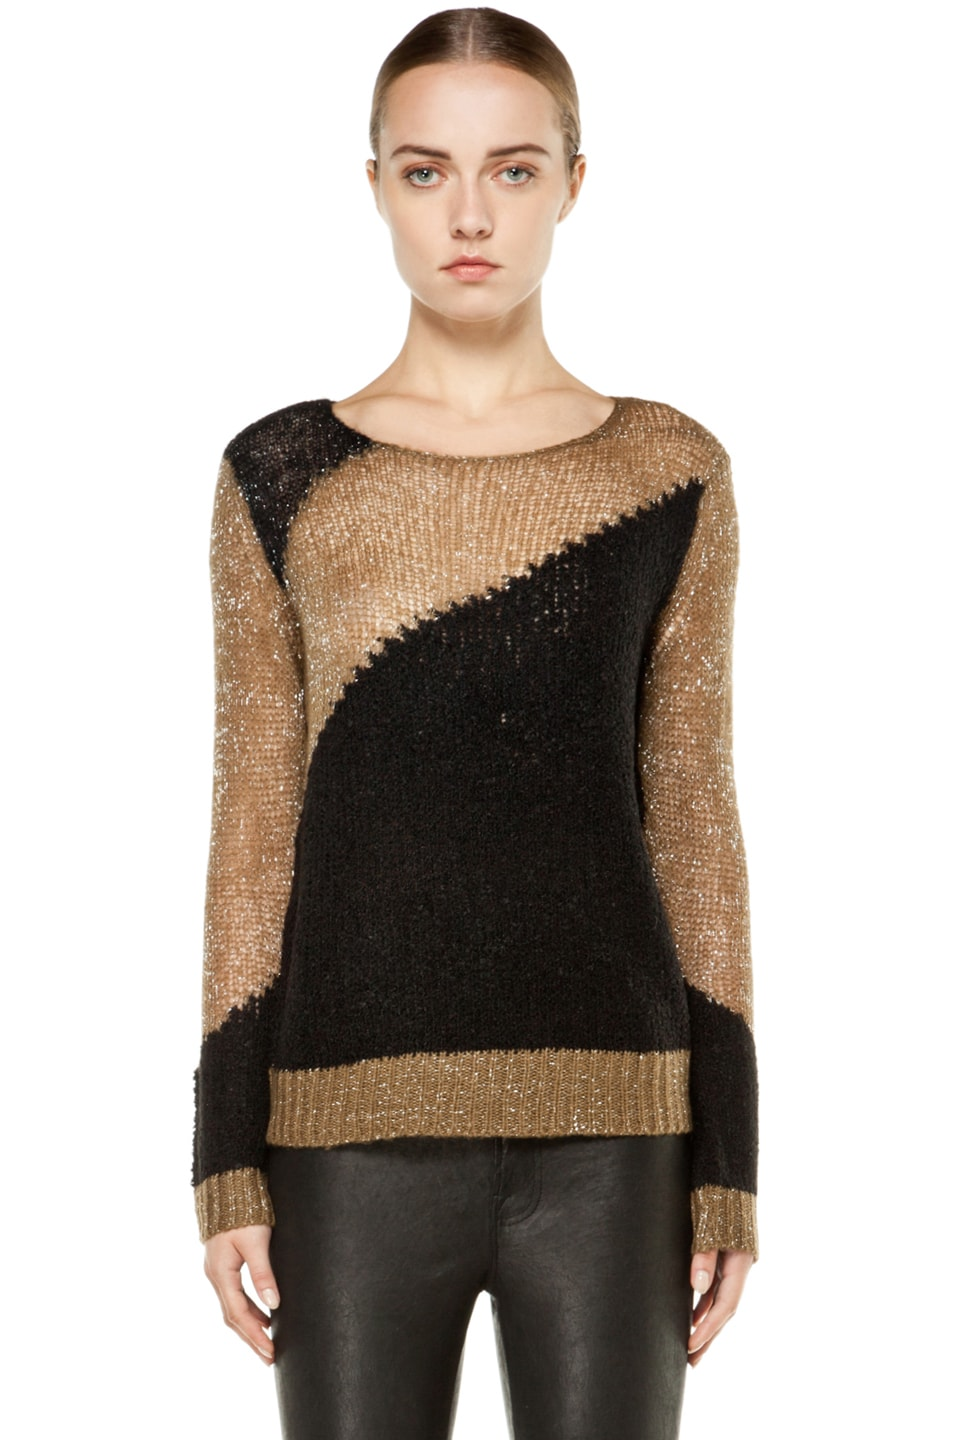 7d1ad4be7ff1c2 Image 1 of Alice + Olivia Opal Novelty Stitch Crewneck Sweater in Beige &  Black